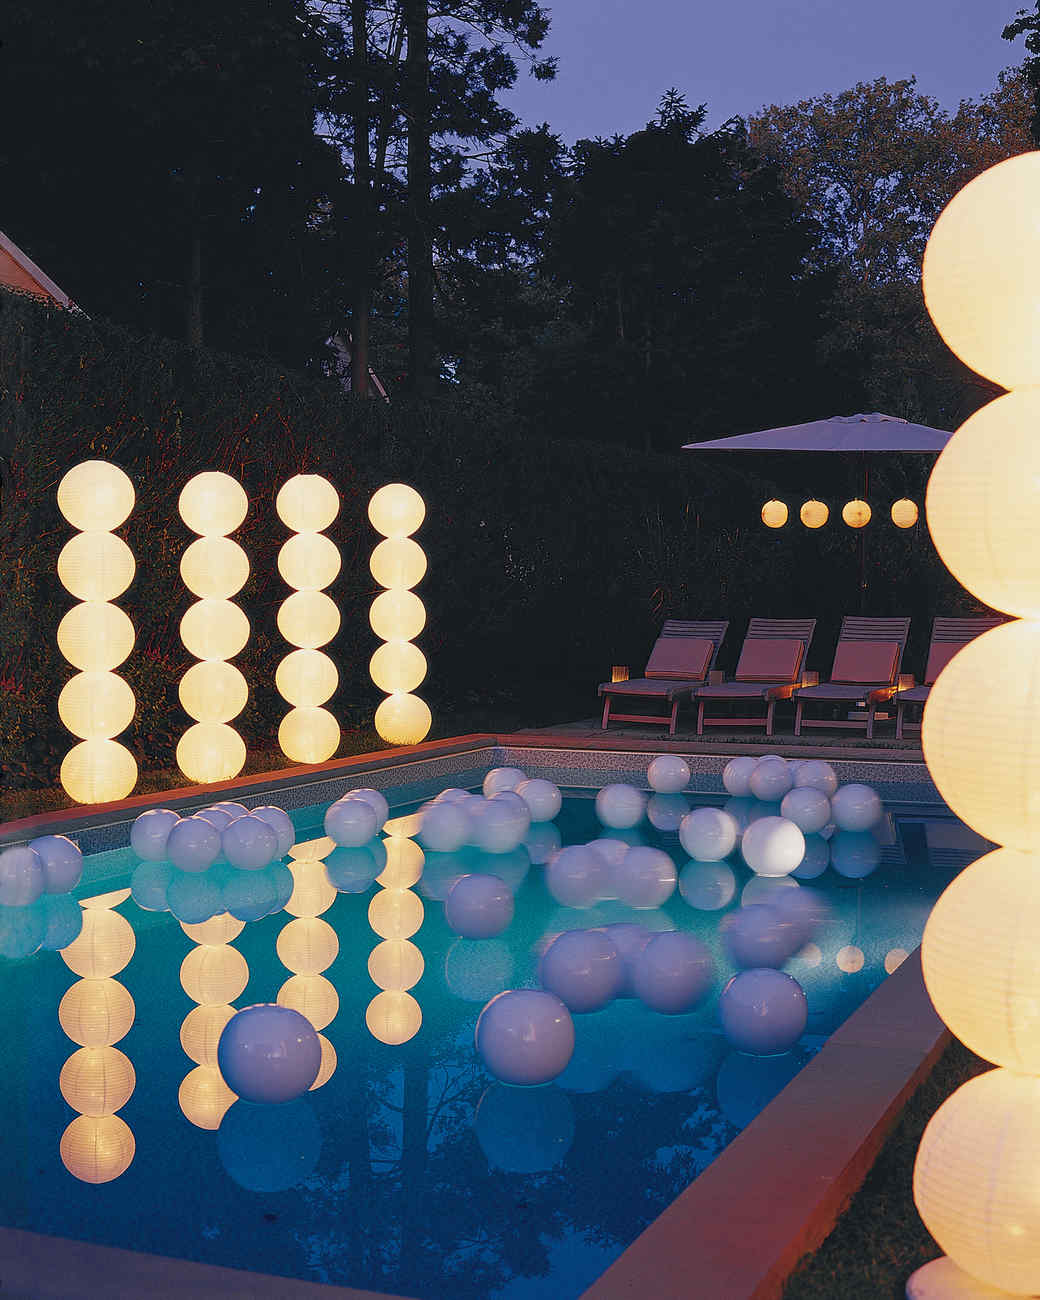 White paper lanterns with lights - Light Columns